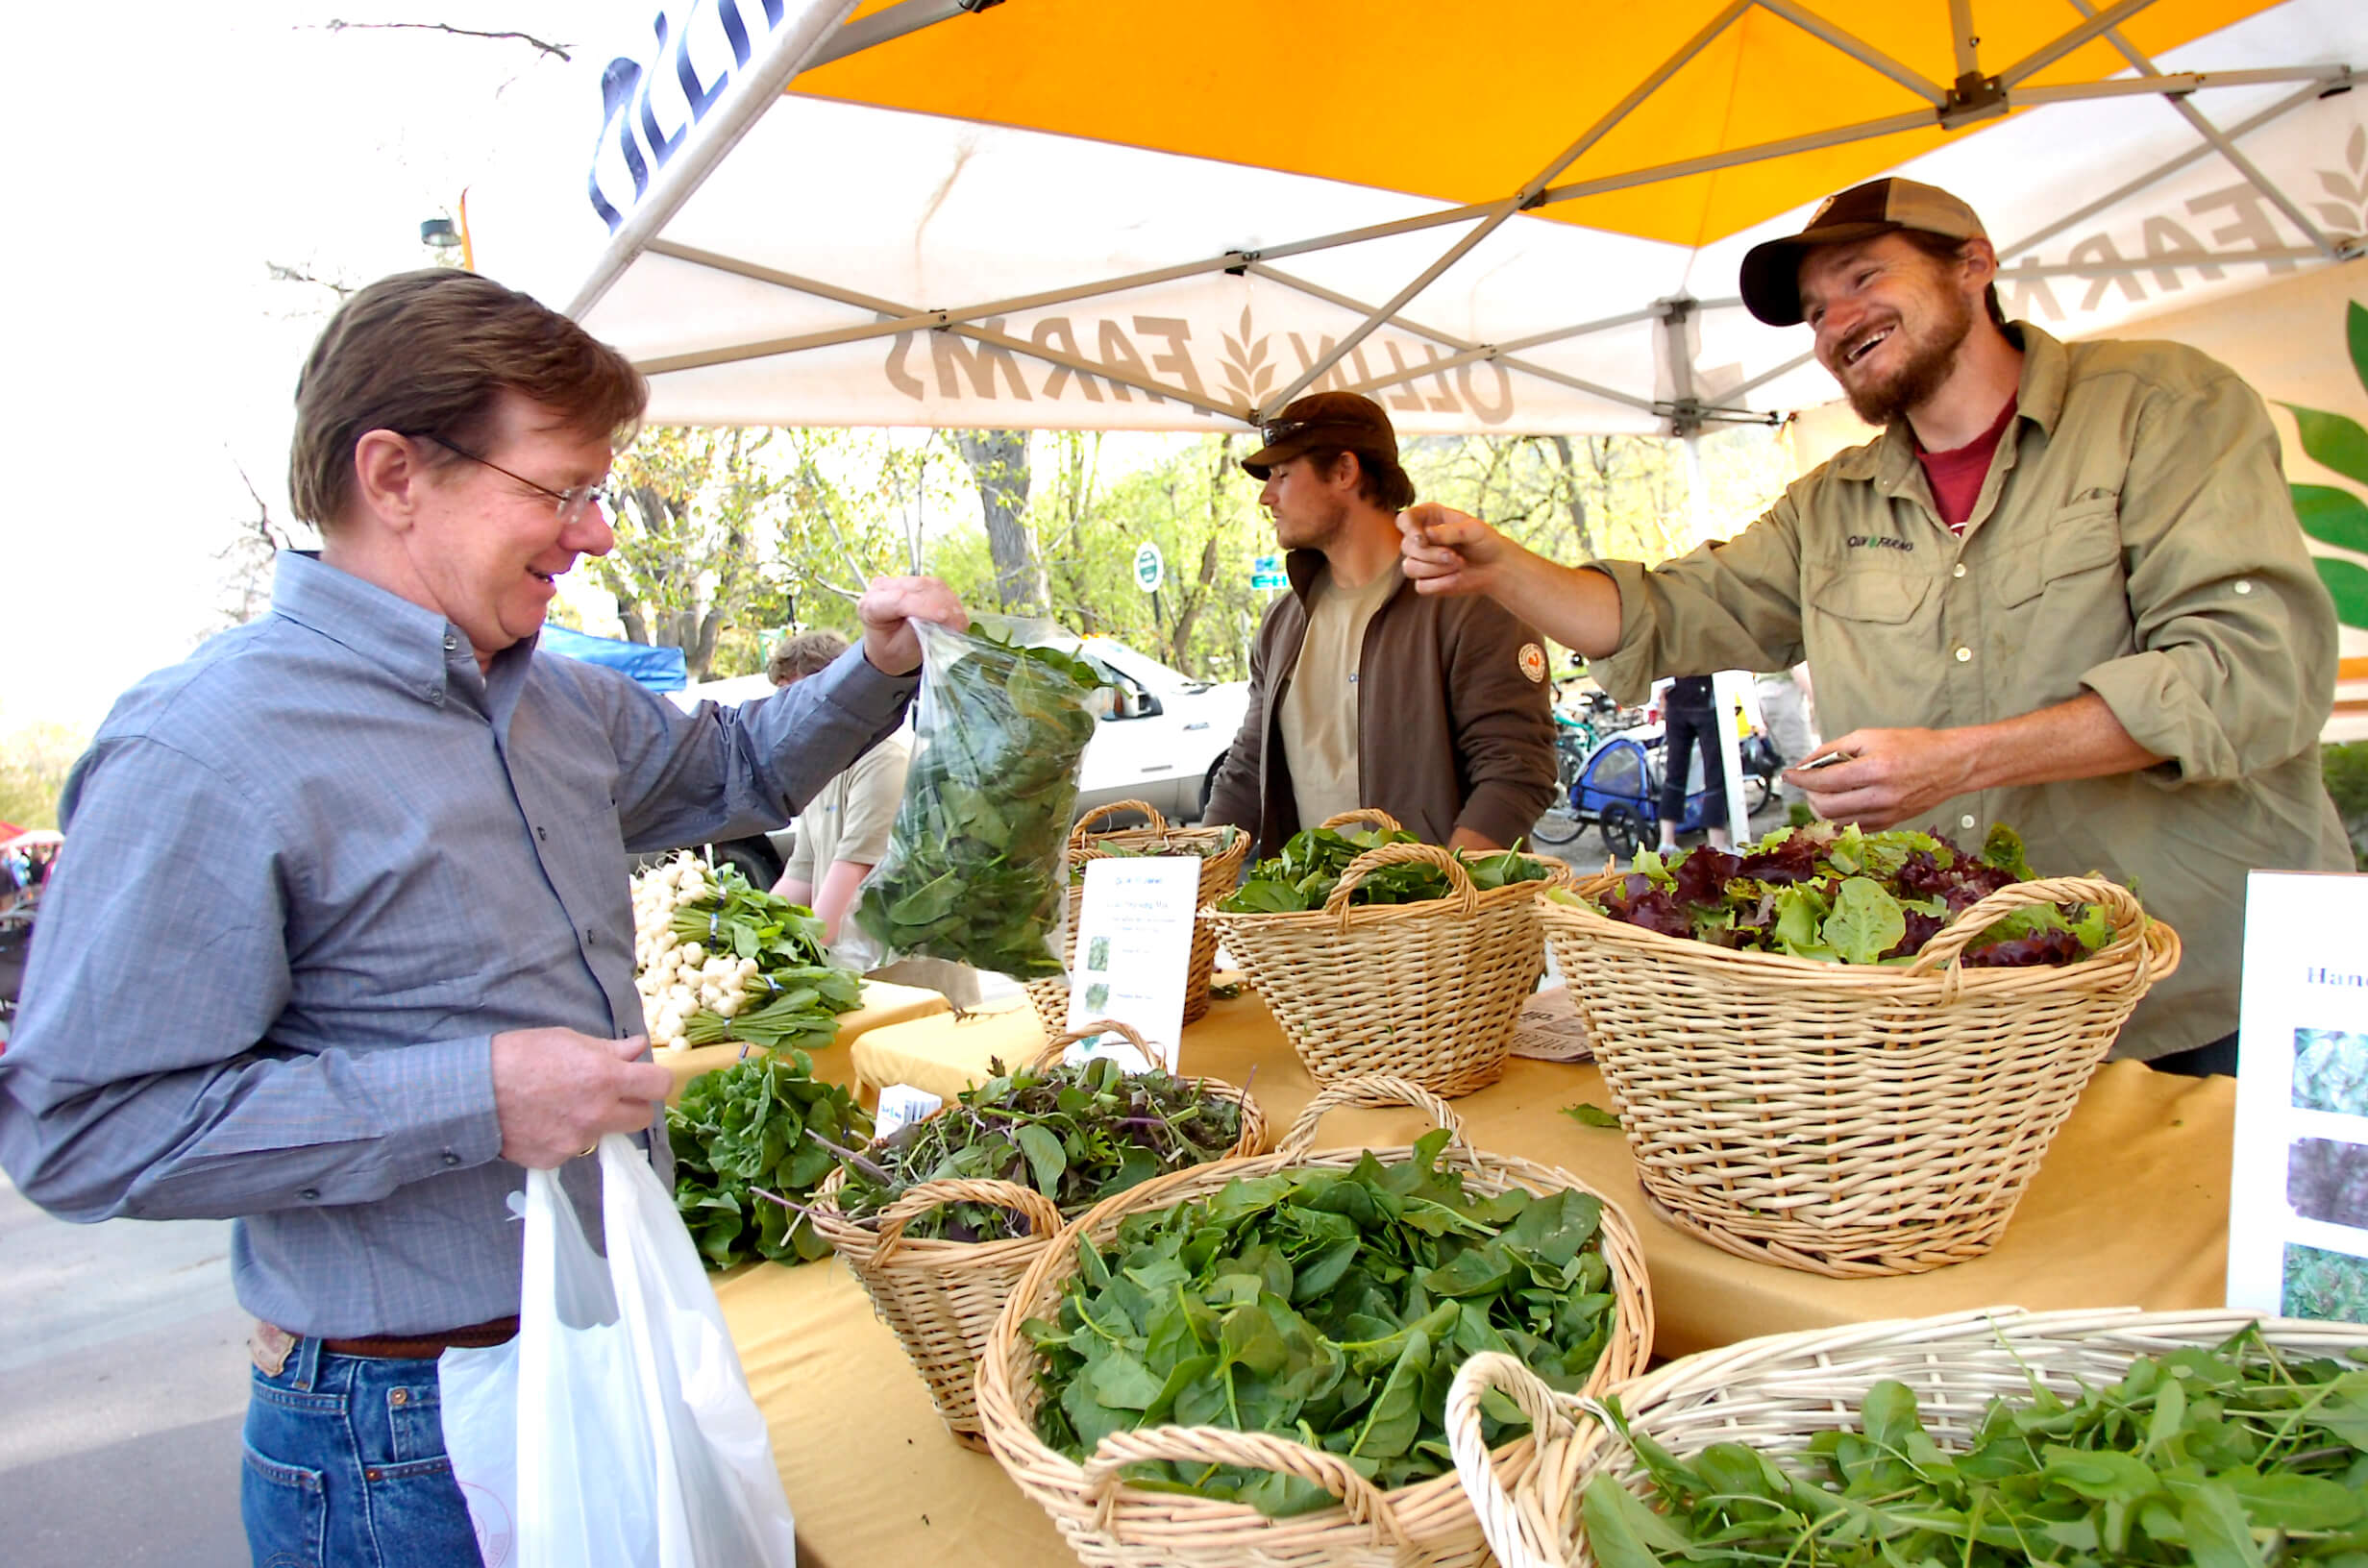 Food Safety For Farmers Markets